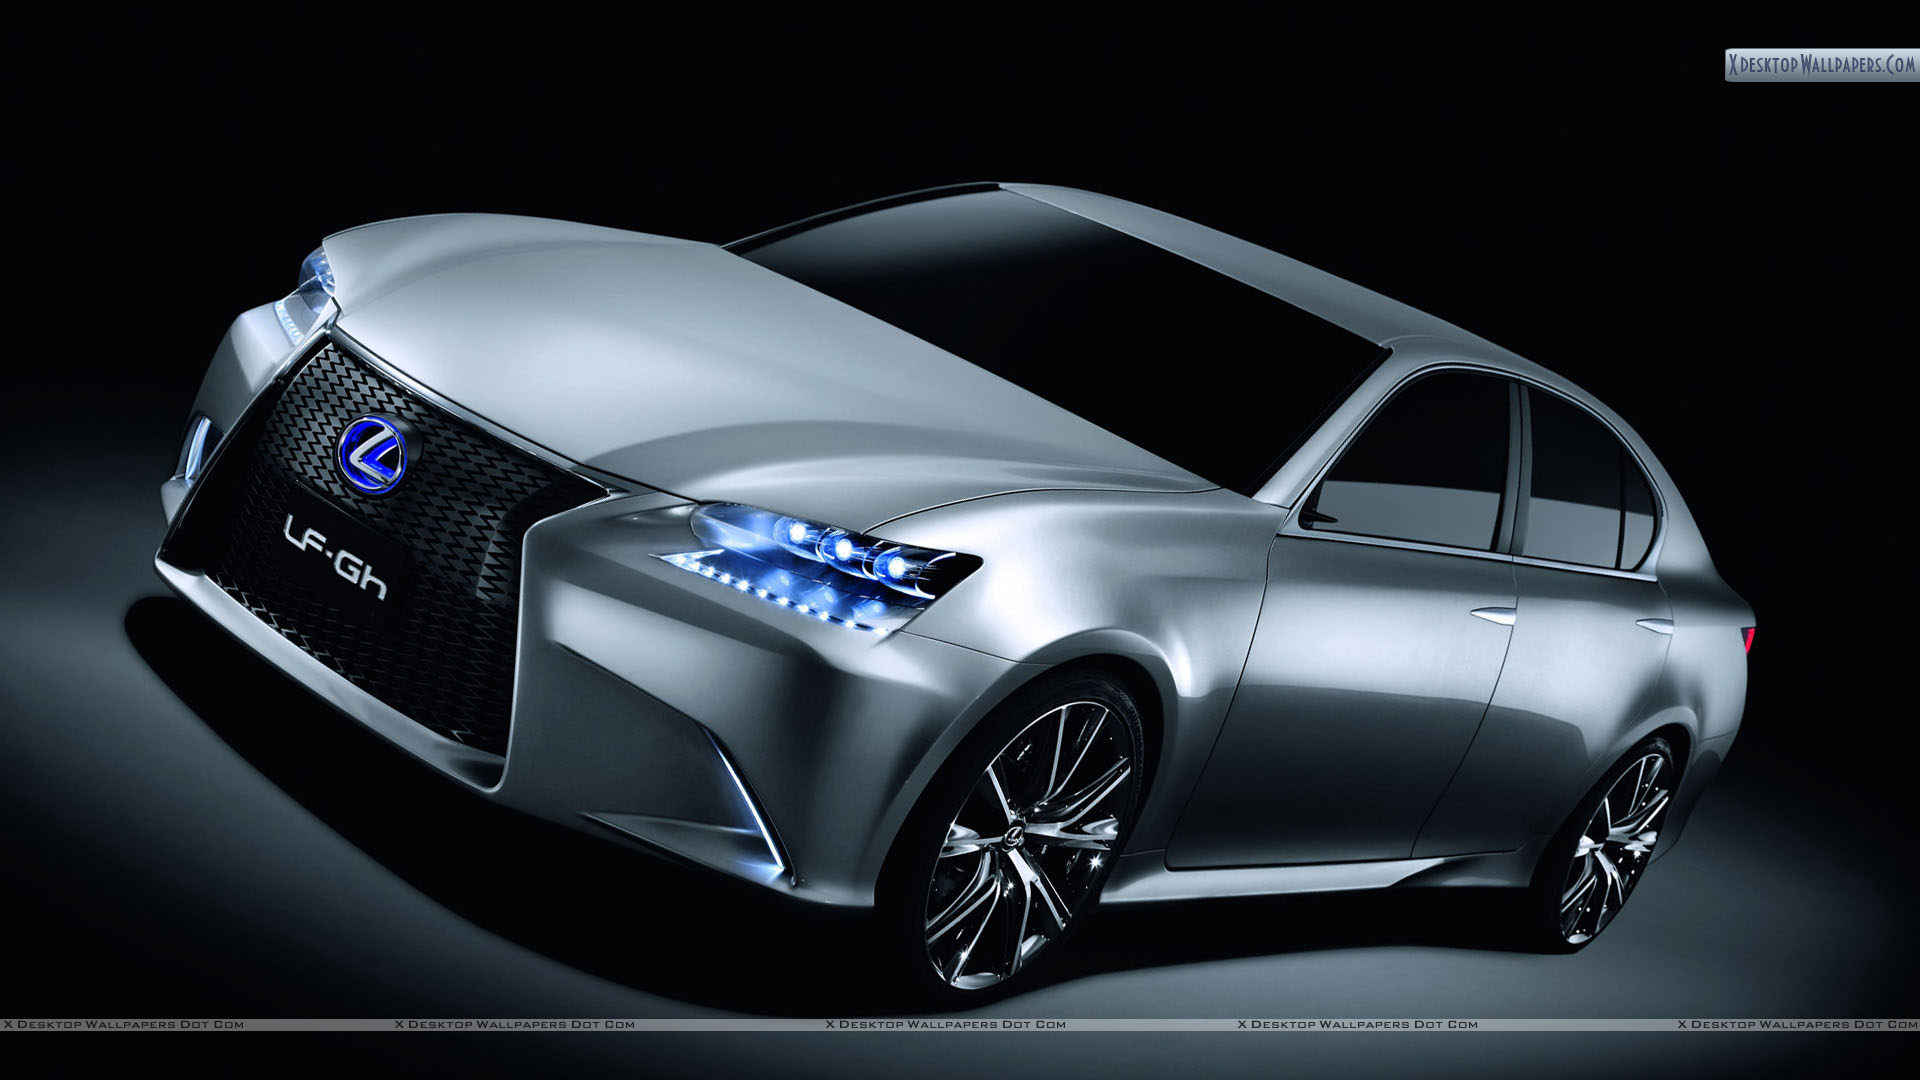 http://xdesktopwallpapers.com/wp-content/uploads/2011/11-1/Lexus-Lf-Gh-Hybrid-Concept-Front-Side-Pose-In-Silver-Color.jpg